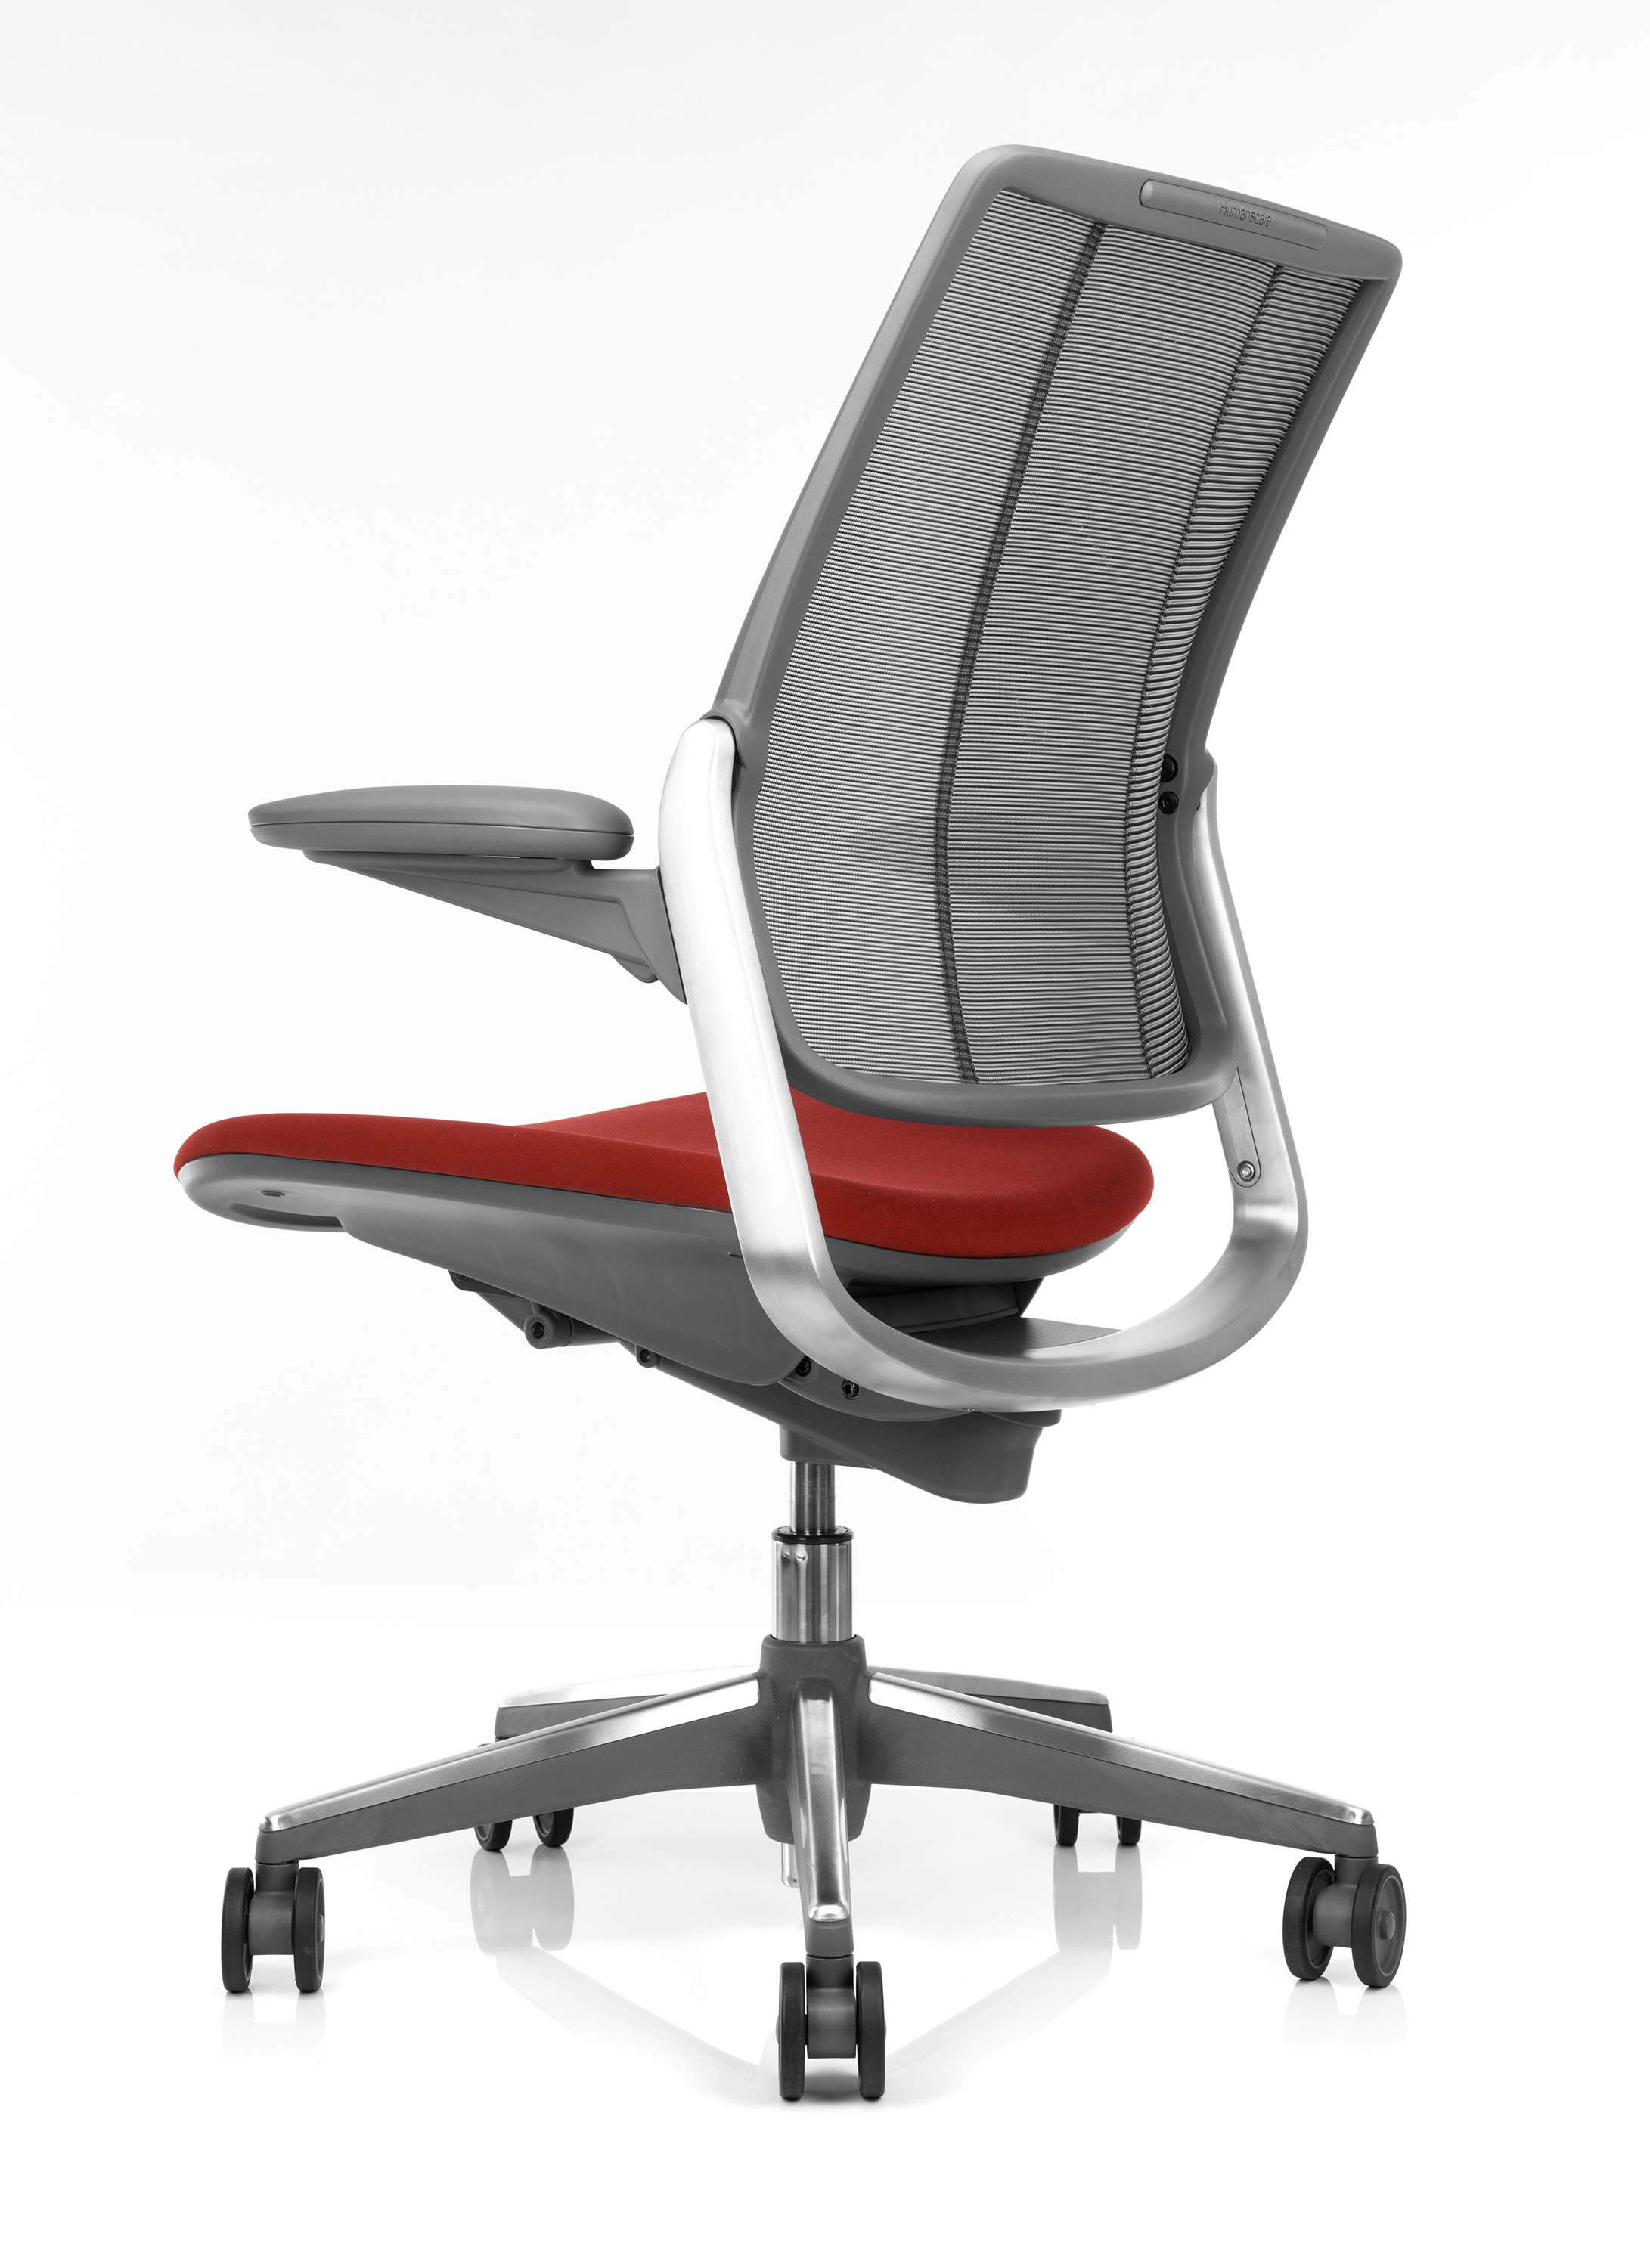 Humanscale Freedom Chair | Humanscale Freedom Chair Replacement Parts | Human Scale Freedom Chair